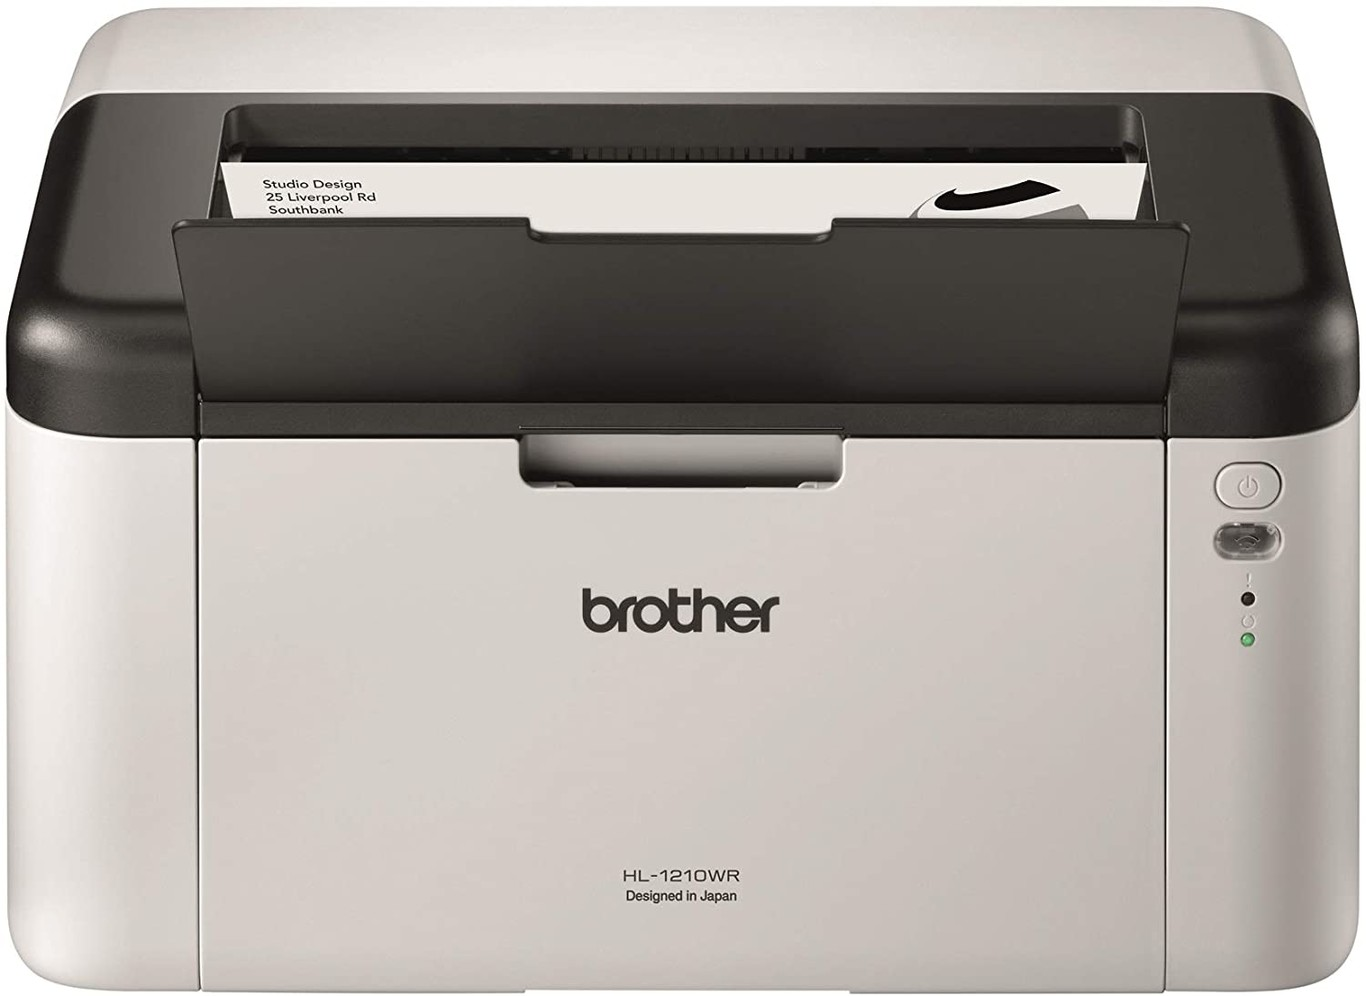 23 Best Printers (2020): Buying Guide With Tips 12